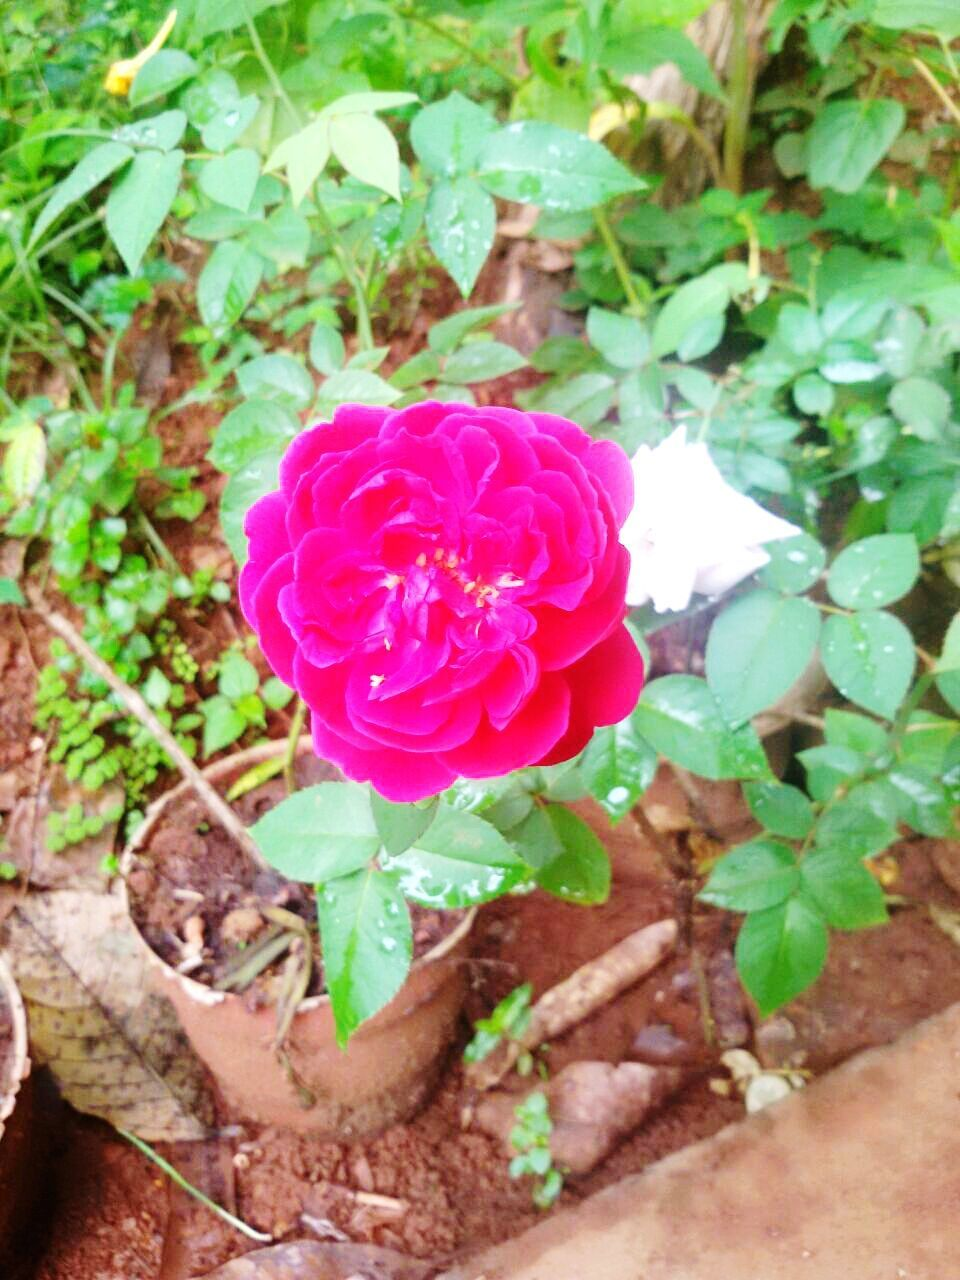 flower, petal, growth, nature, fragility, plant, rose - flower, freshness, beauty in nature, pink color, no people, flower head, outdoors, leaf, blooming, close-up, day